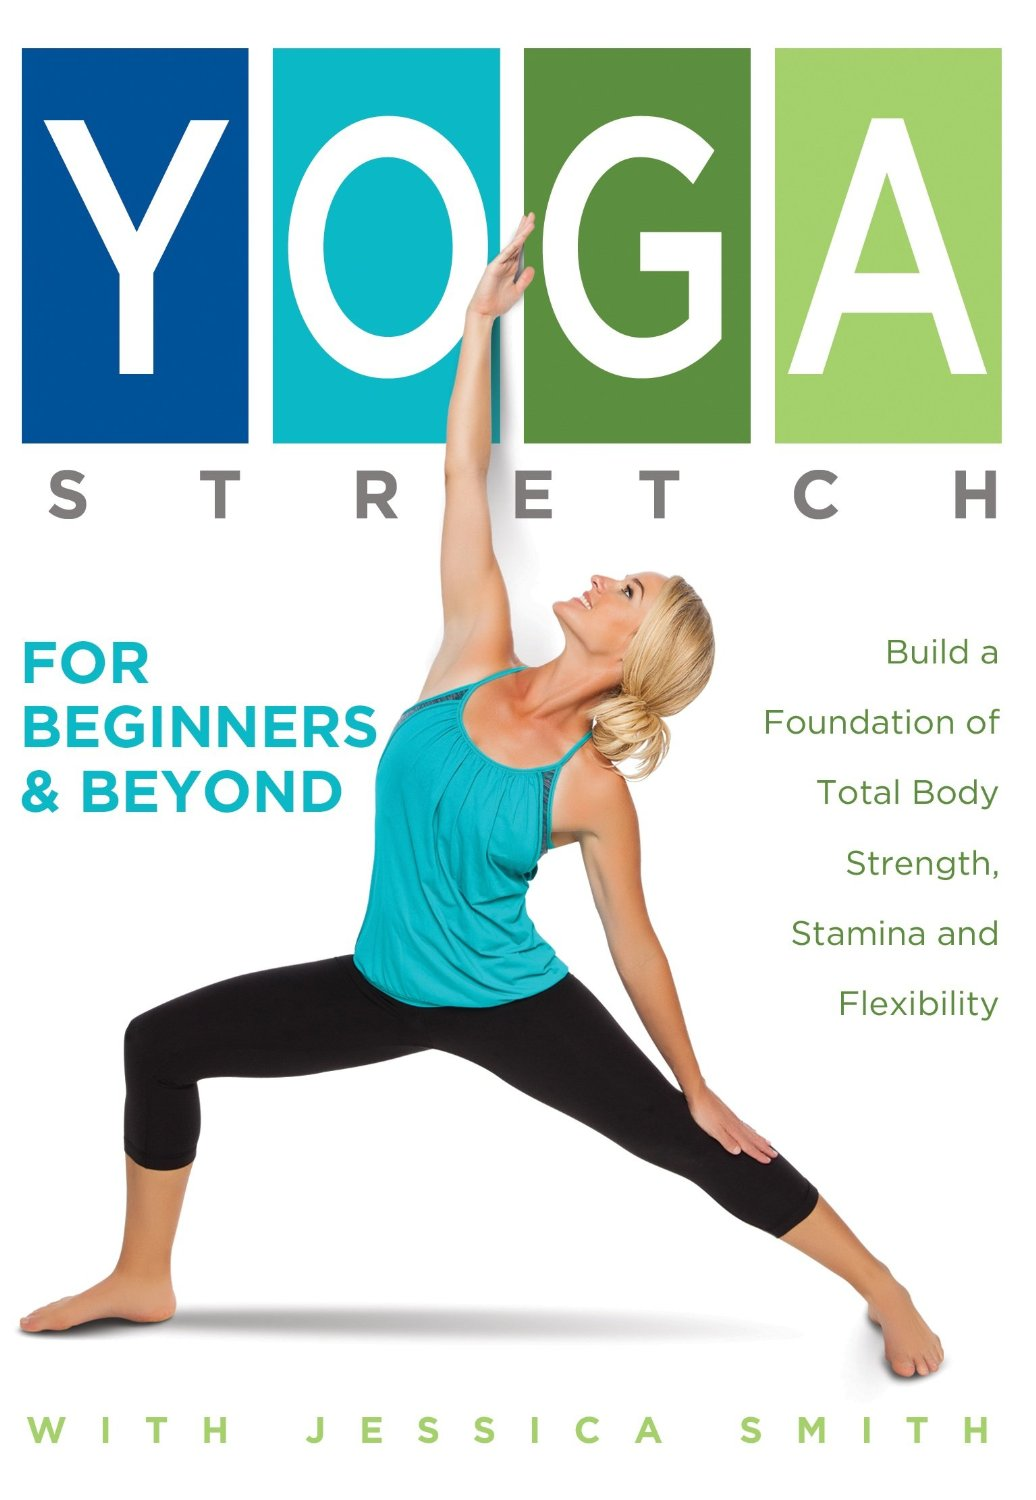 AVAILABLE ON AMAZON Yoga Stretch For Beginners And Beyond Is Also Often Recommended To Exercises Provided On This DVD Help People Make